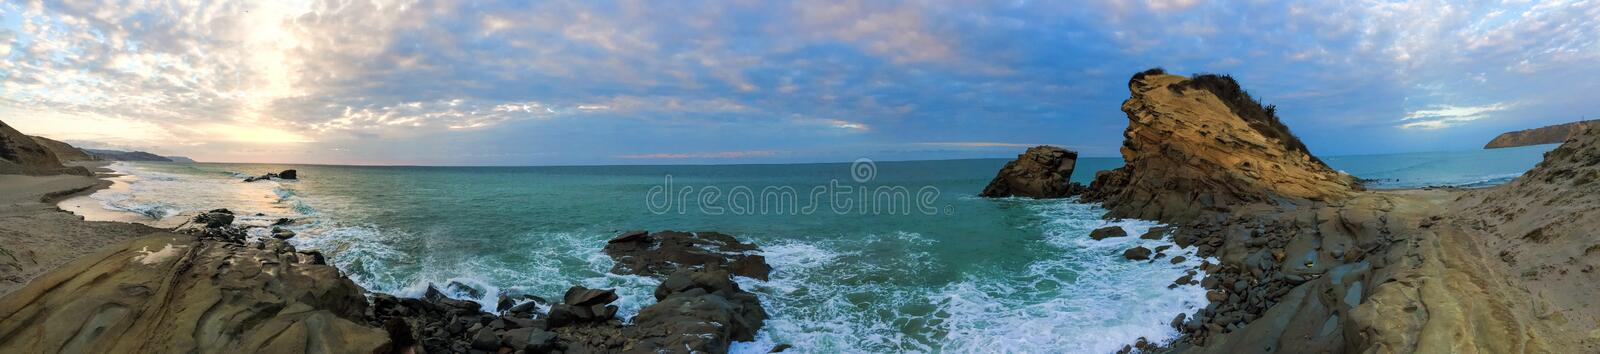 Panorama of Playa La Tinosa, Ecuador. Picturesque panoramic view of La Tinosa beach at sunset with waves crashing on the incredible rock formations